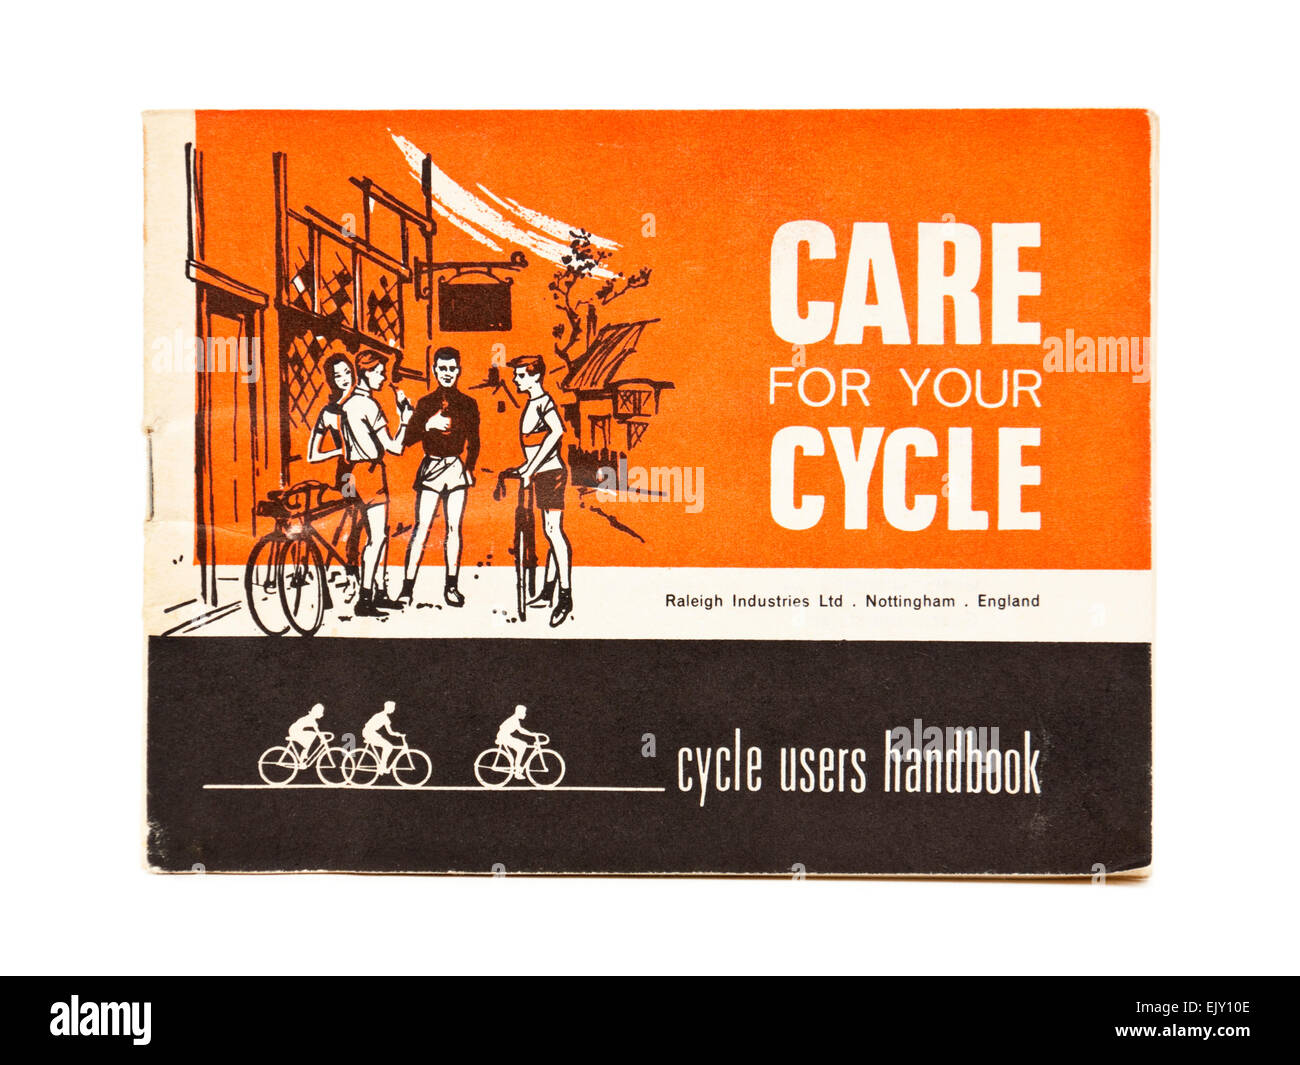 Vintage 1950's 'Care For Your Cycle' handbook by Raleigh Industries Ltd, Nottingham, England - Stock Image